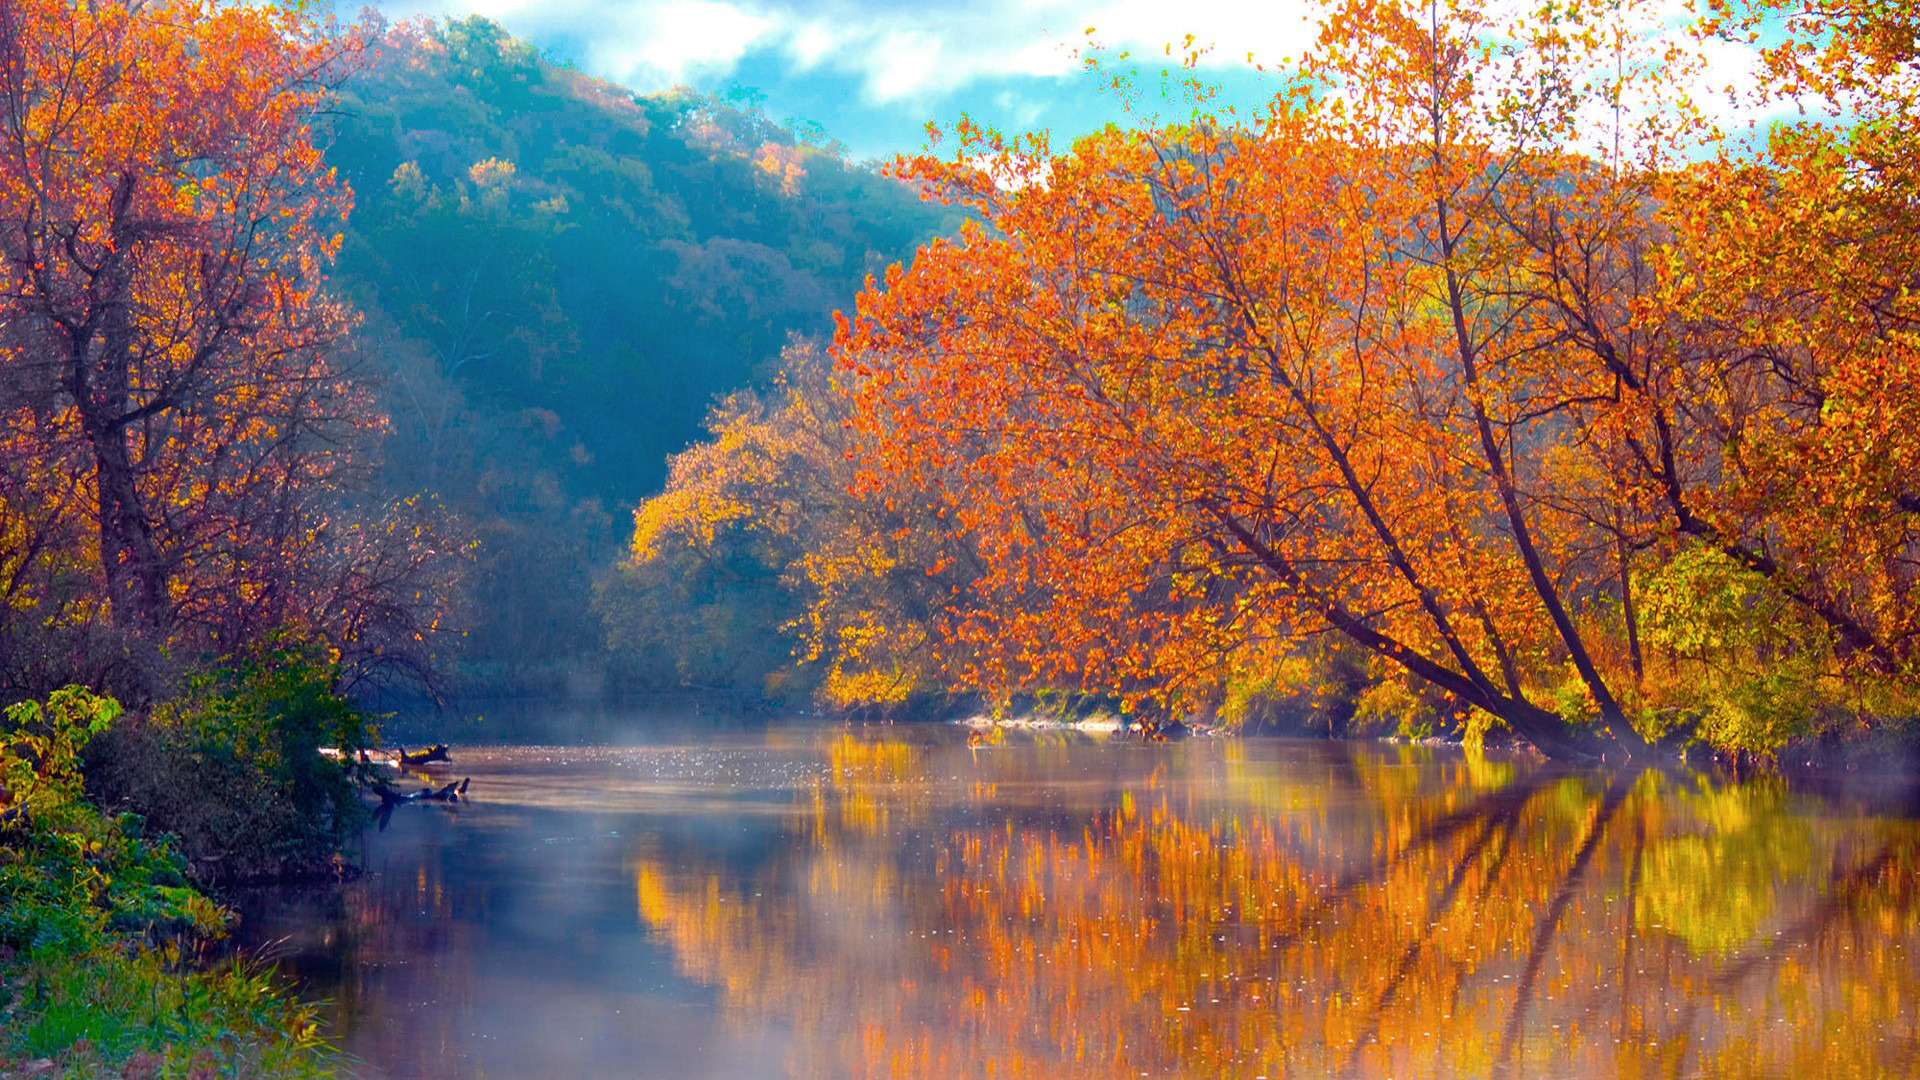 Autumn lake photo